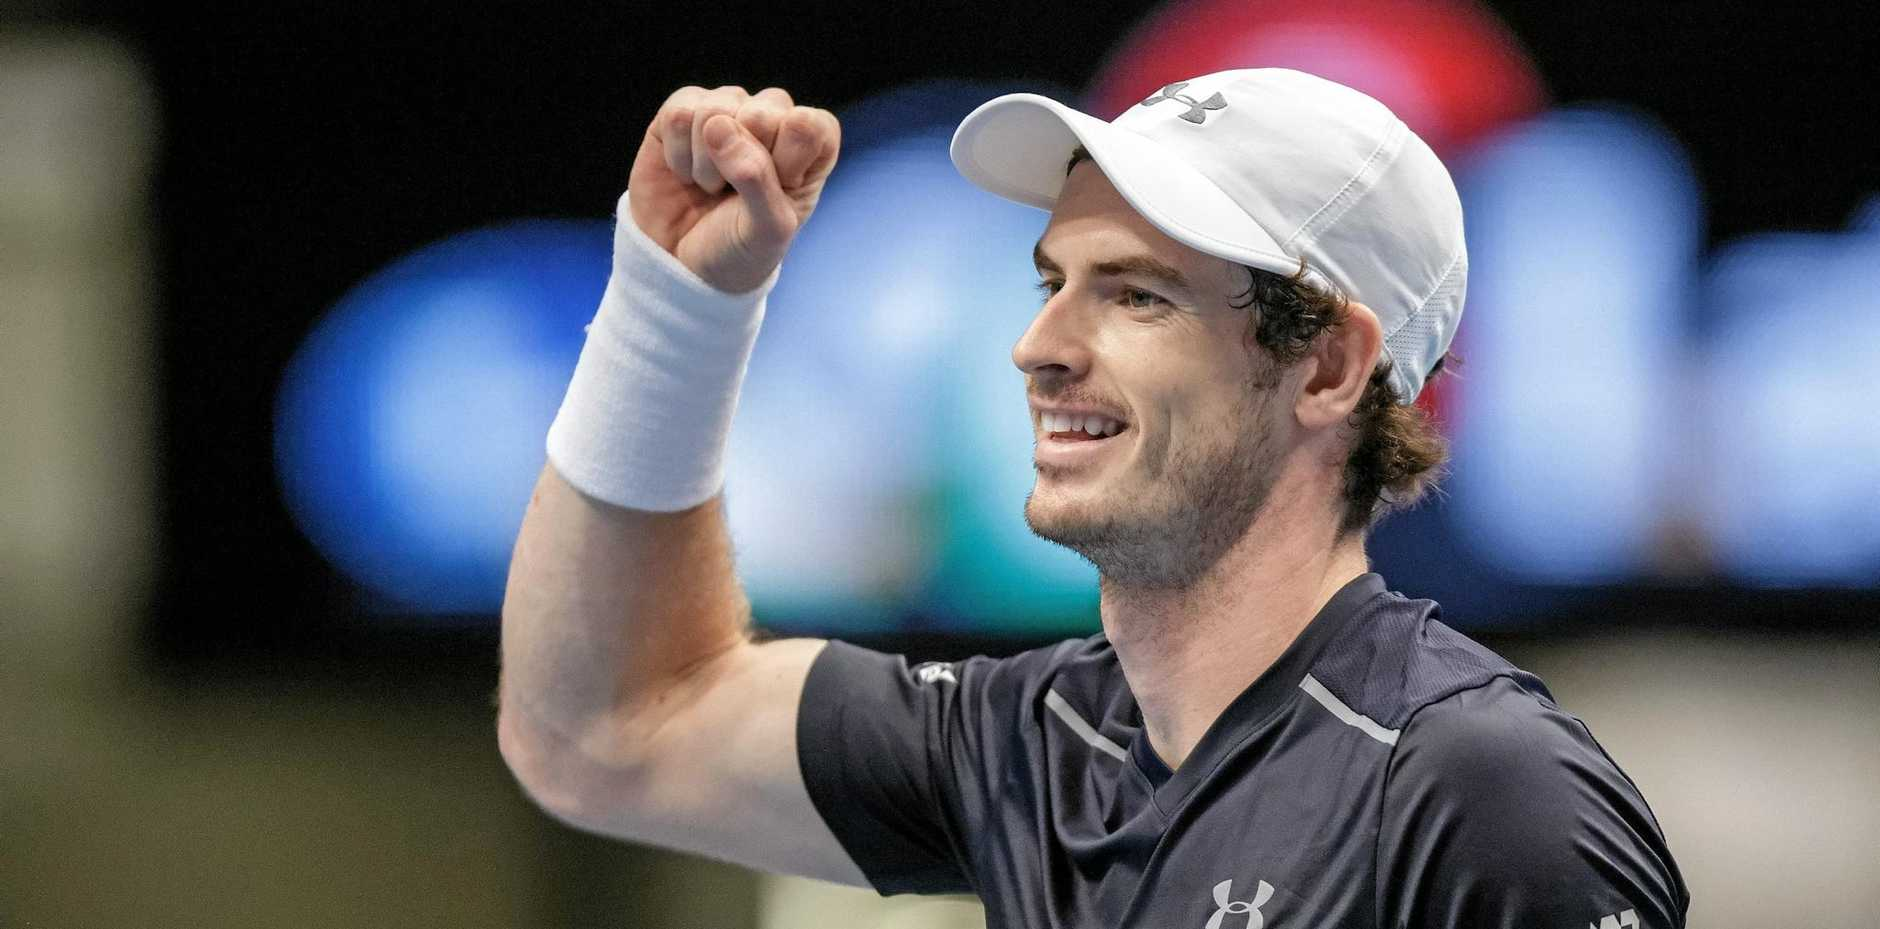 Andy Murray of Britain celebrates after winning against Jo-Wilfried Tsonga of France in the singles final of the Erste Bank Open ATP tennis tournament in Vienna.